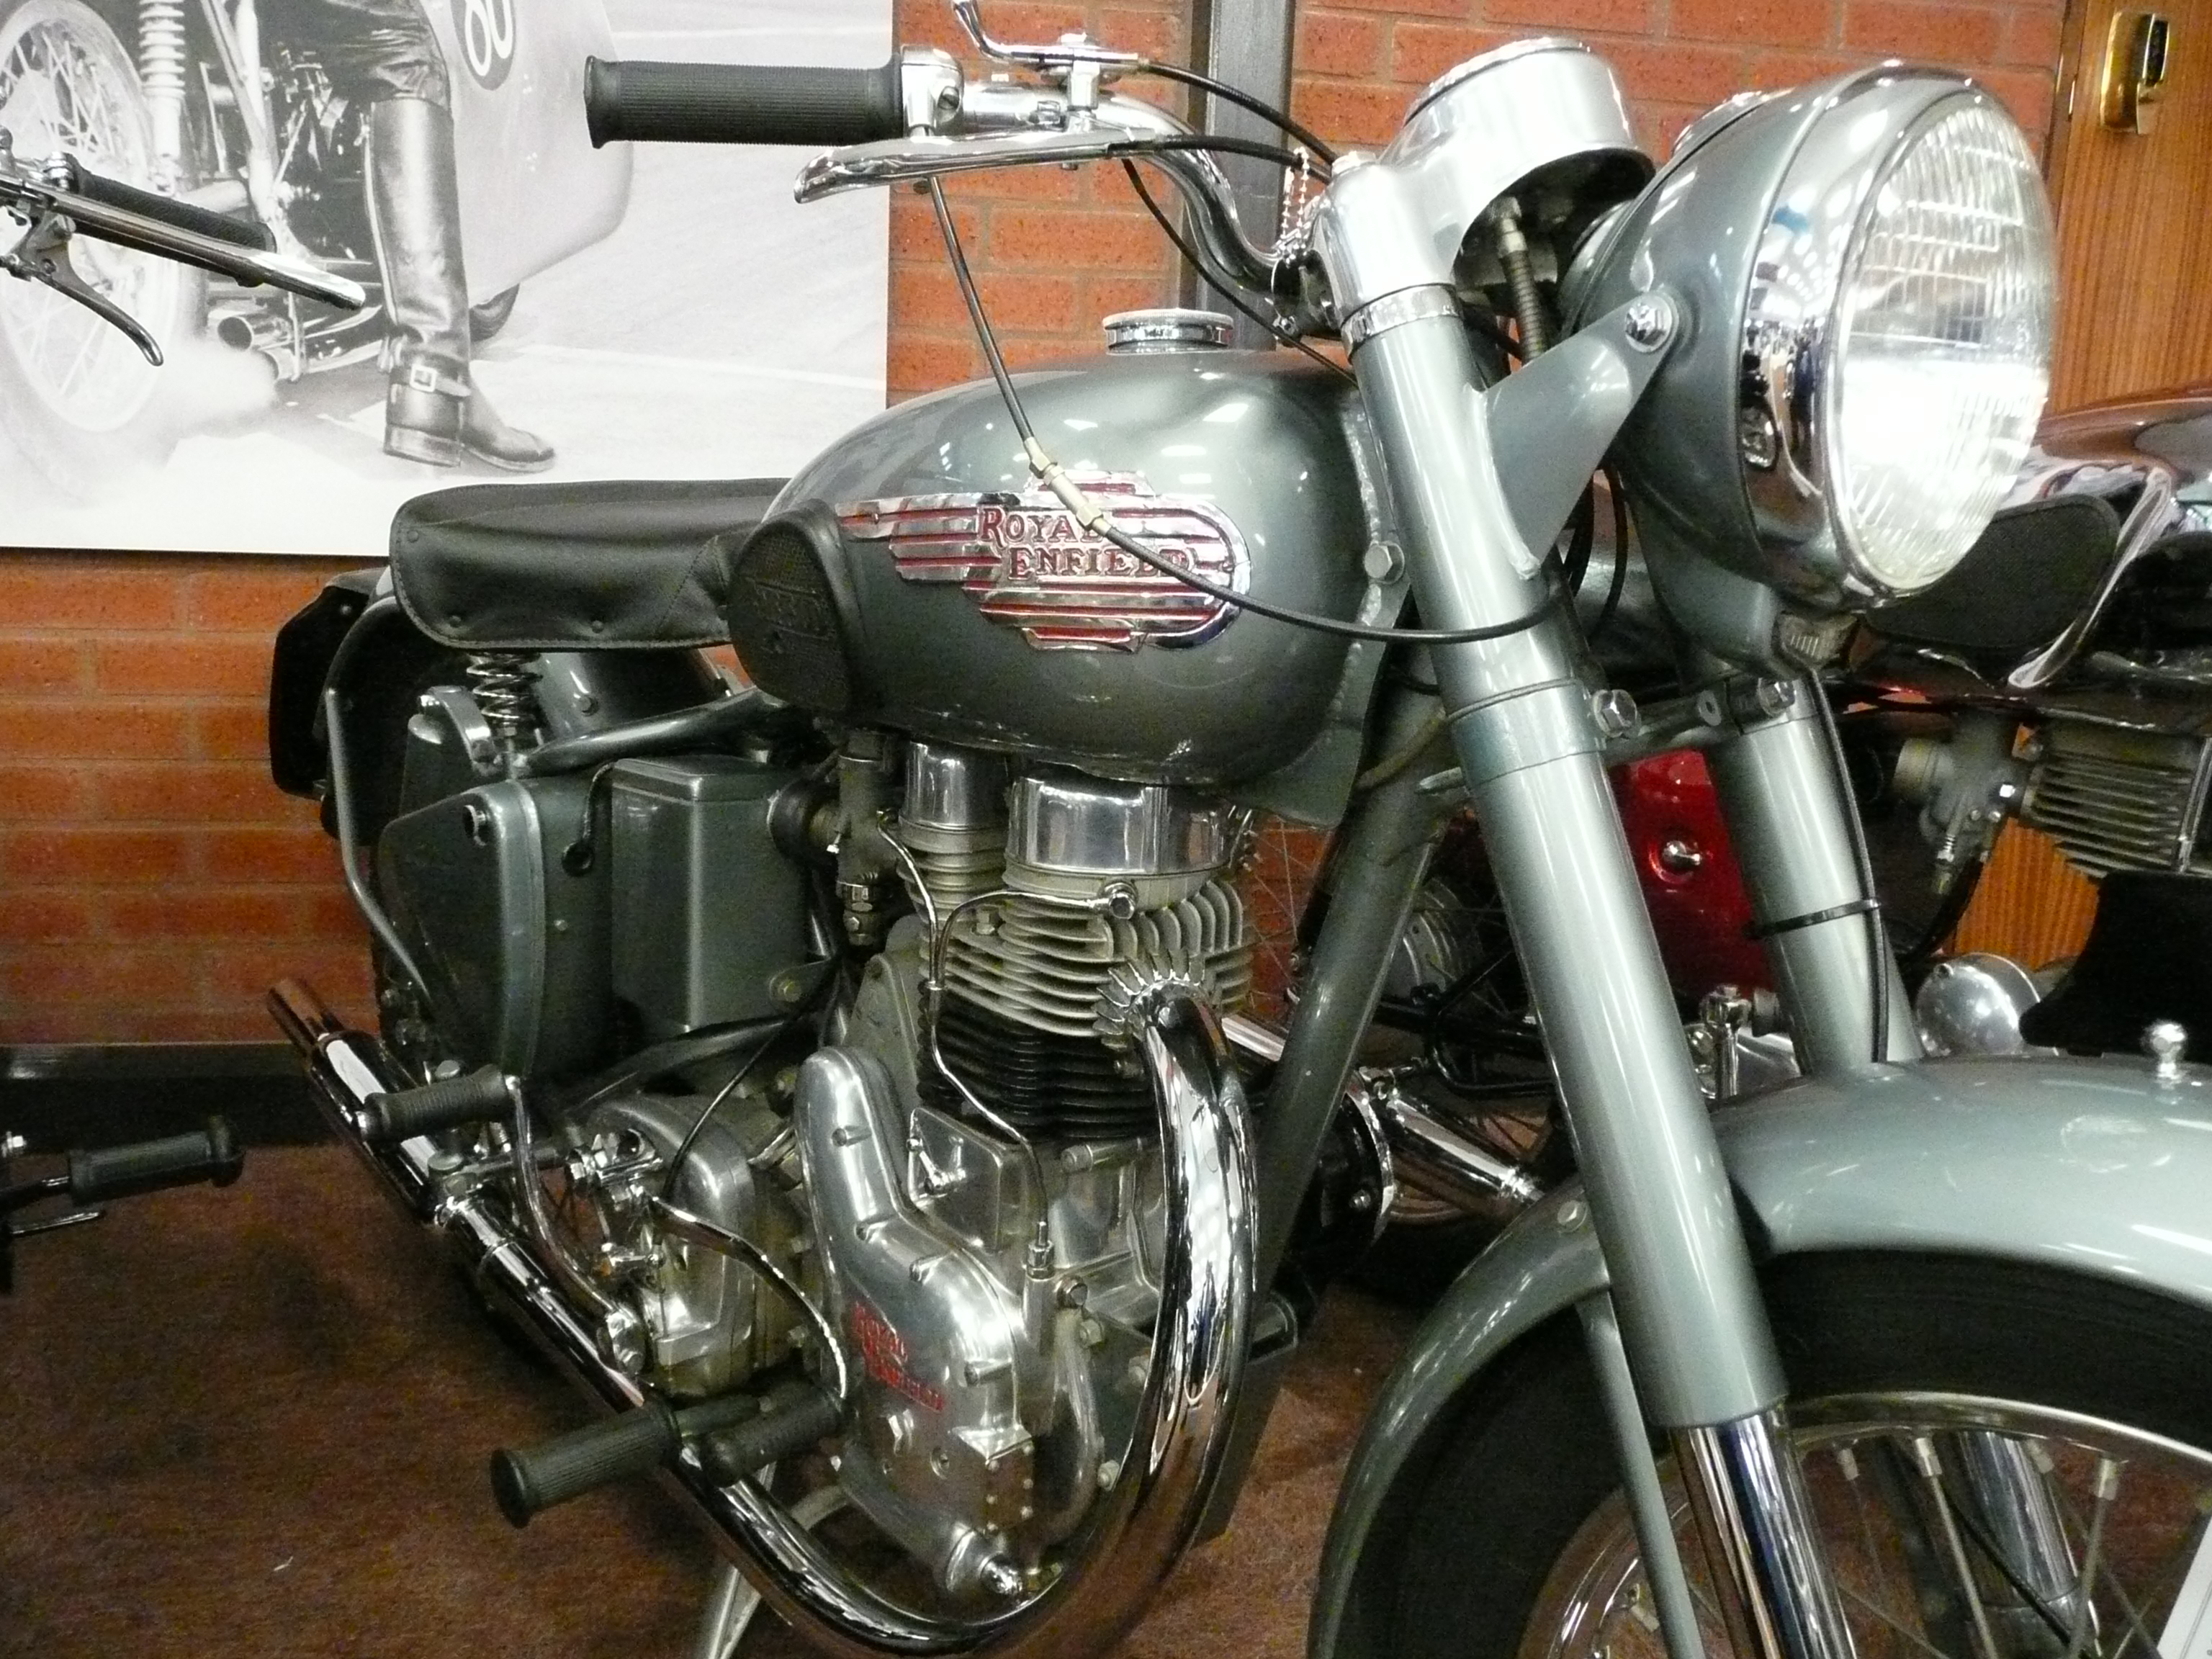 Royal Enfield Bullet 500 Trial Trail 2001 images #122972